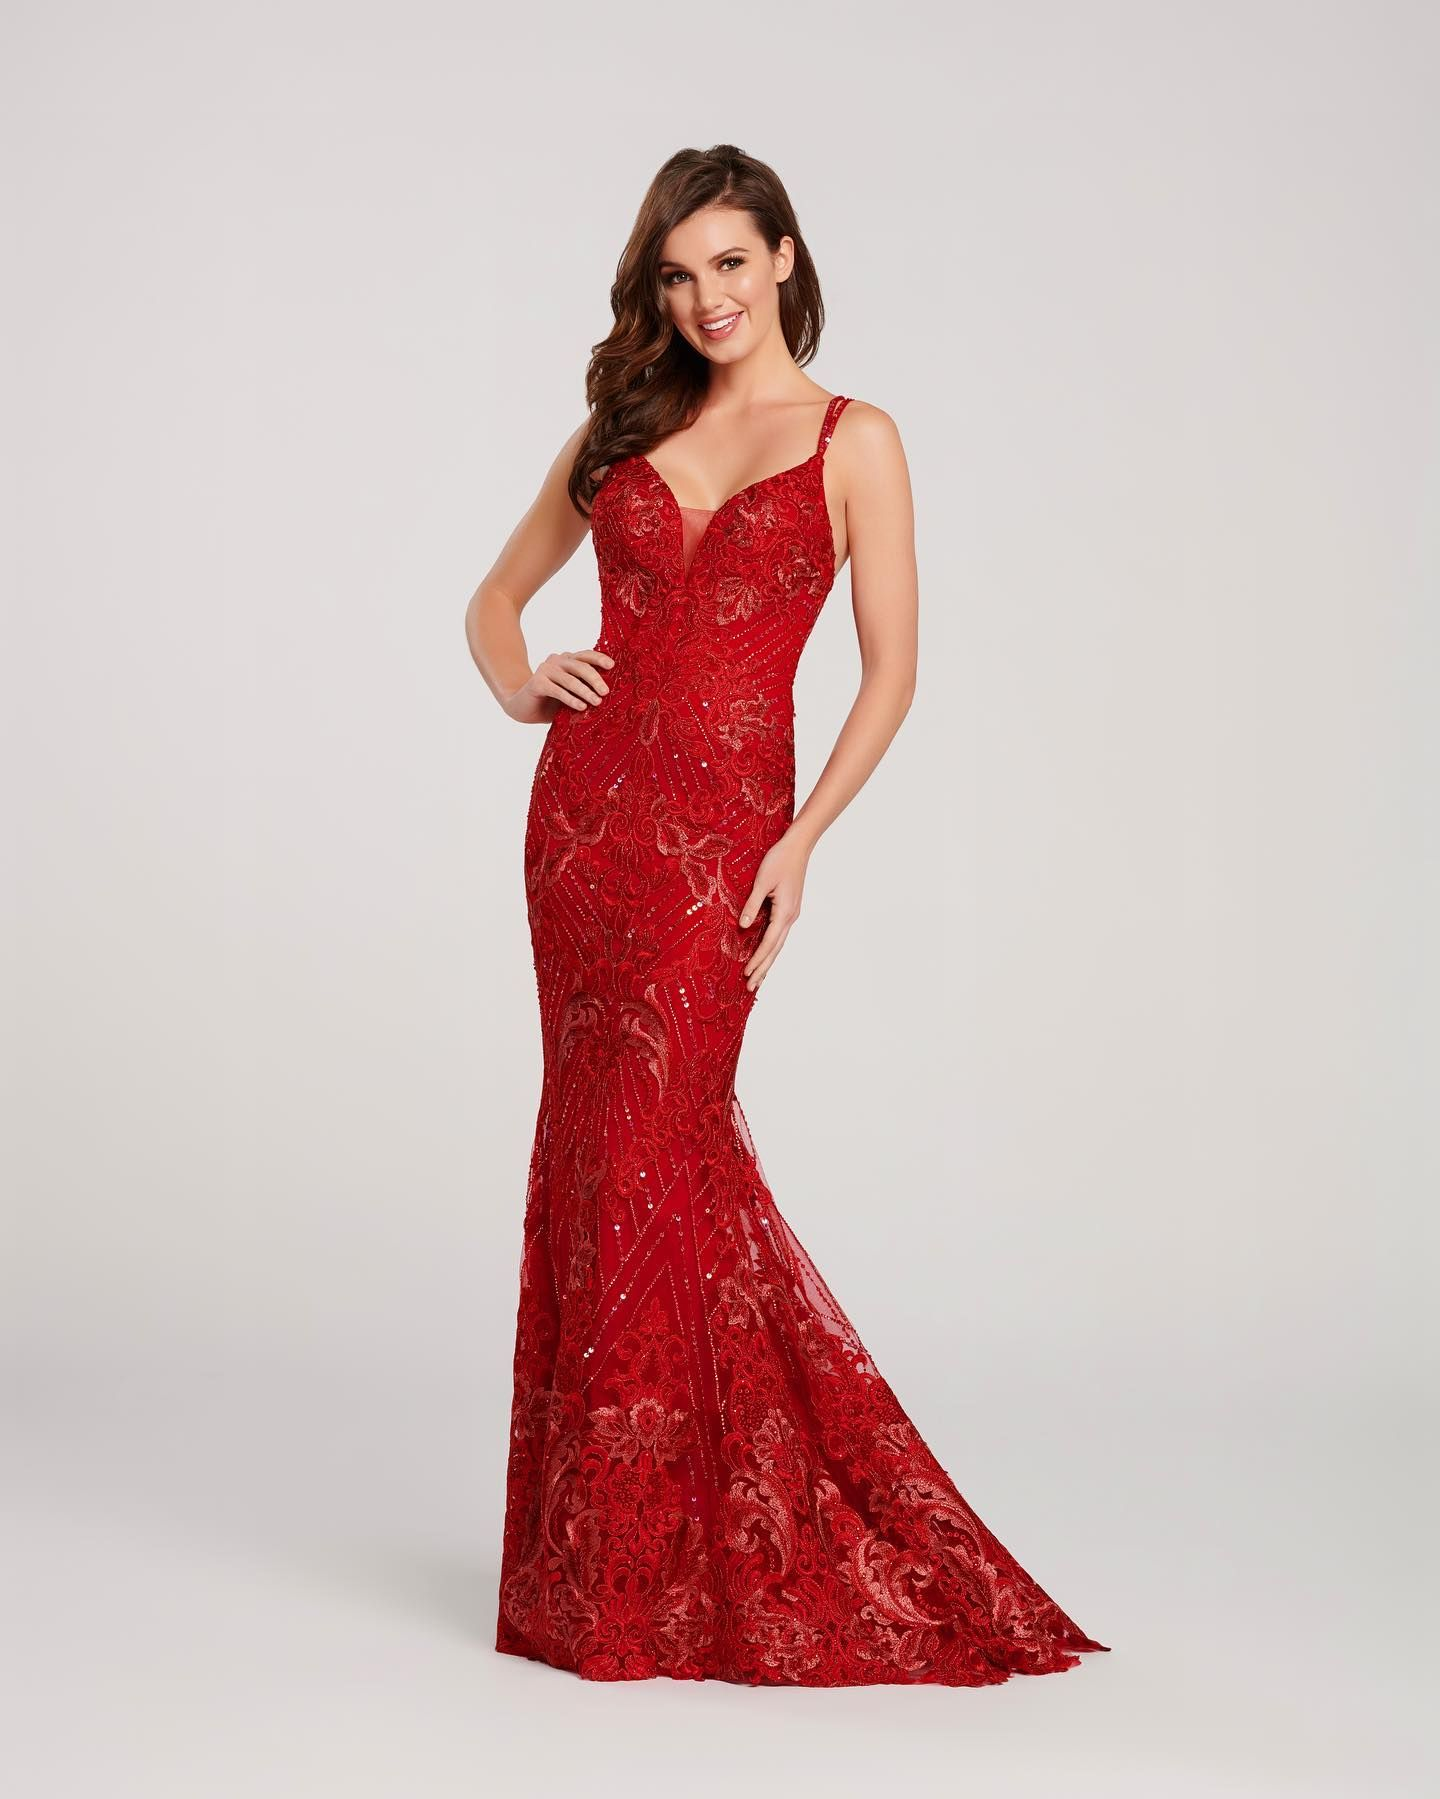 Stunning Red Gown Evening Dresses Prom Prom Dresses Prom Designs [ 1799 x 1440 Pixel ]